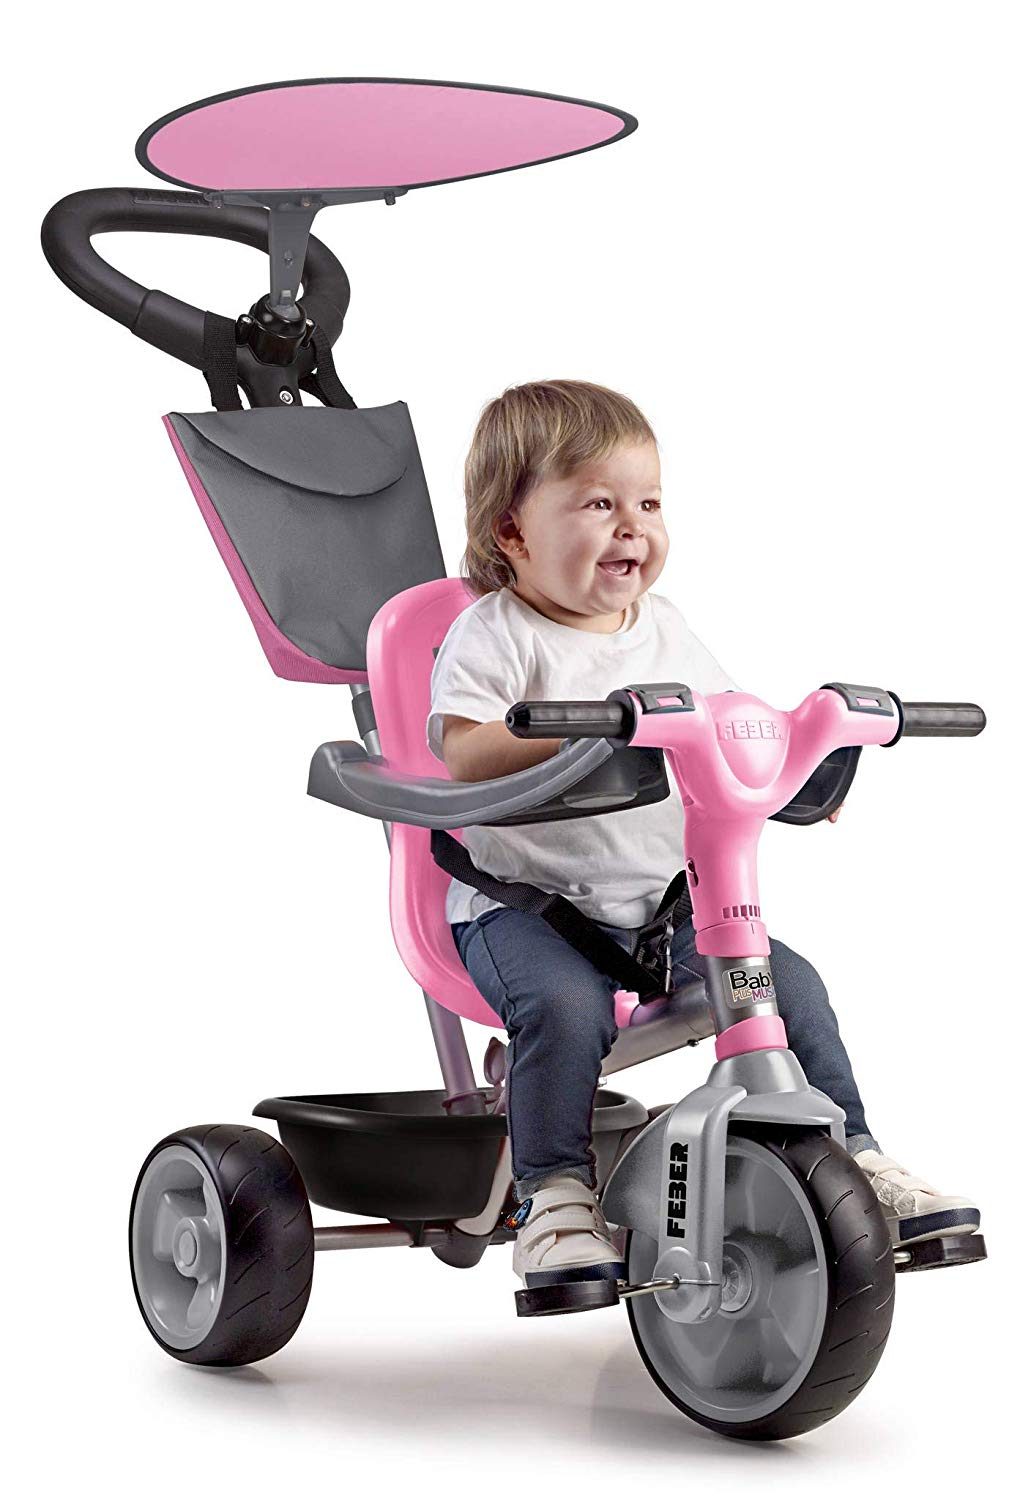 TRICICLO BABY PLUS MUSIC/PINK 12132 -  N44820